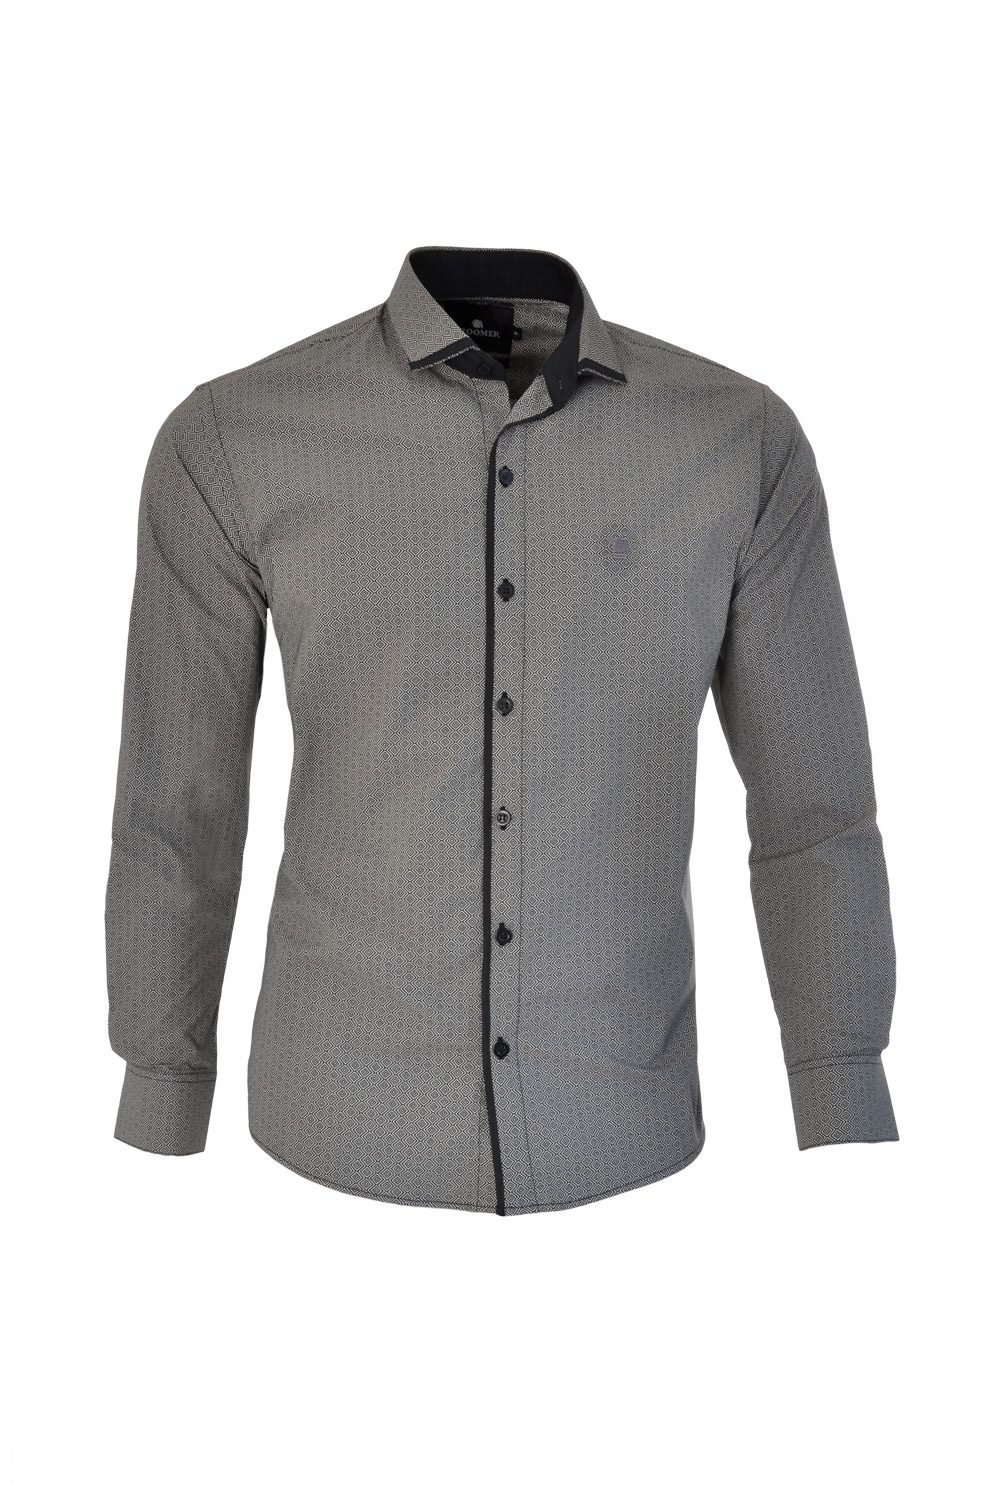 CAMISA ML FASHION SUPER SLIM ALGODAO COMPOSE ESTAMPA PRETO